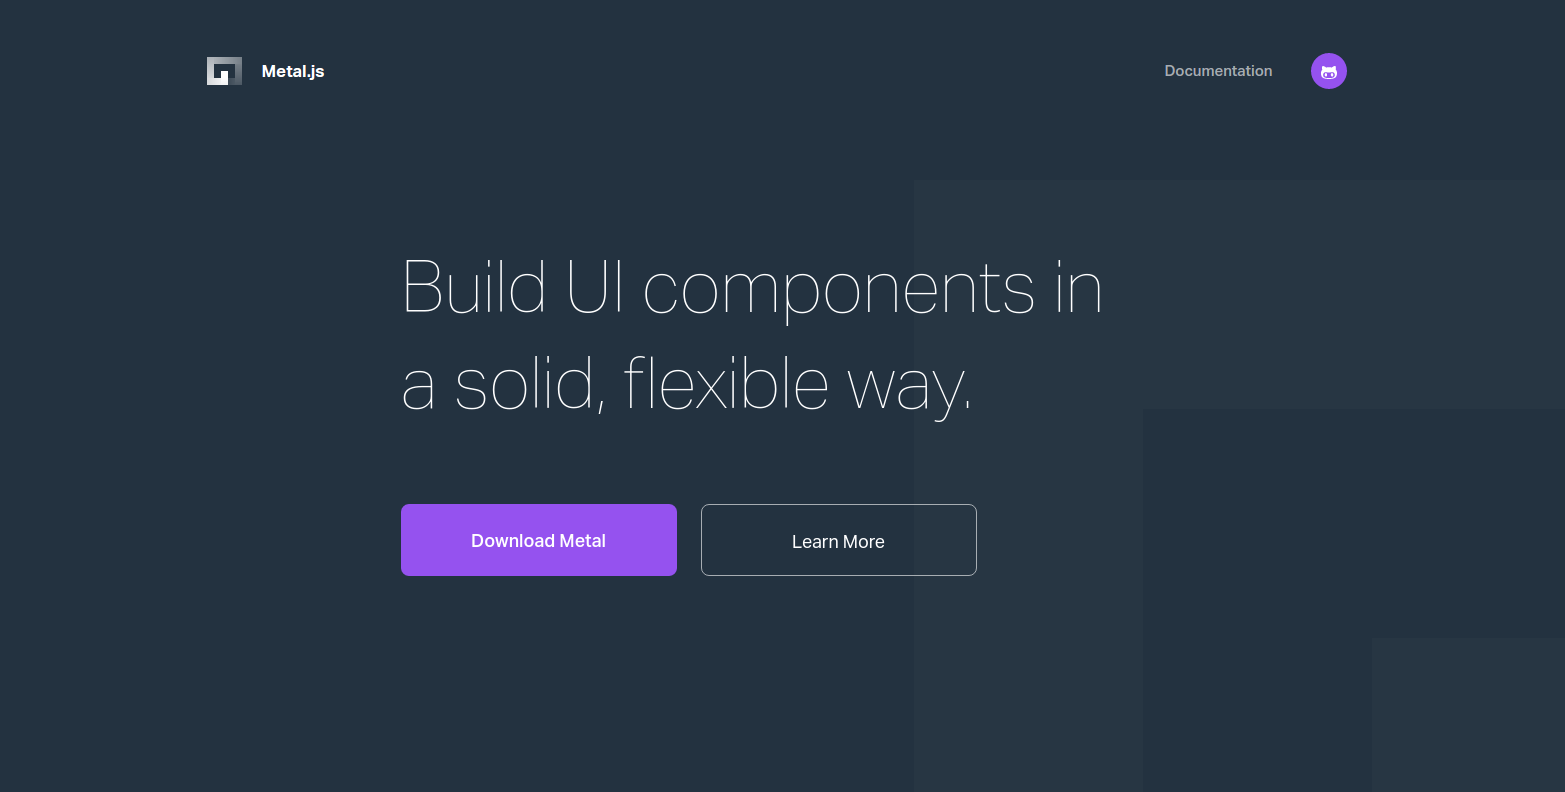 Figure 1: Metal.js is a new framework for building UI components.